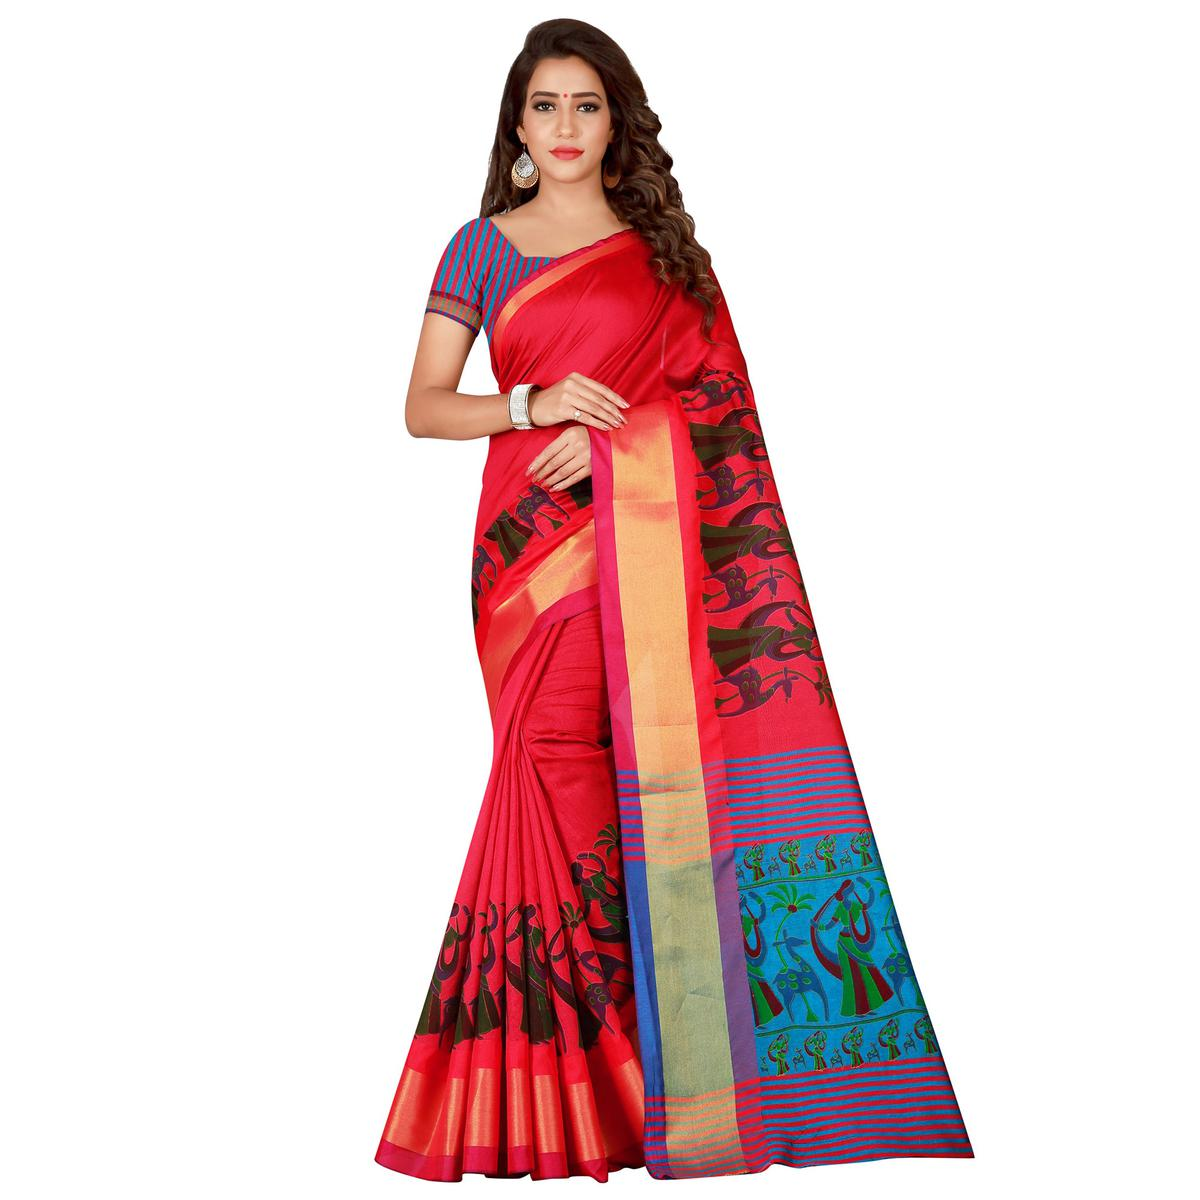 Refreshing Pink Colored festive Wear Cotton Silk Saree